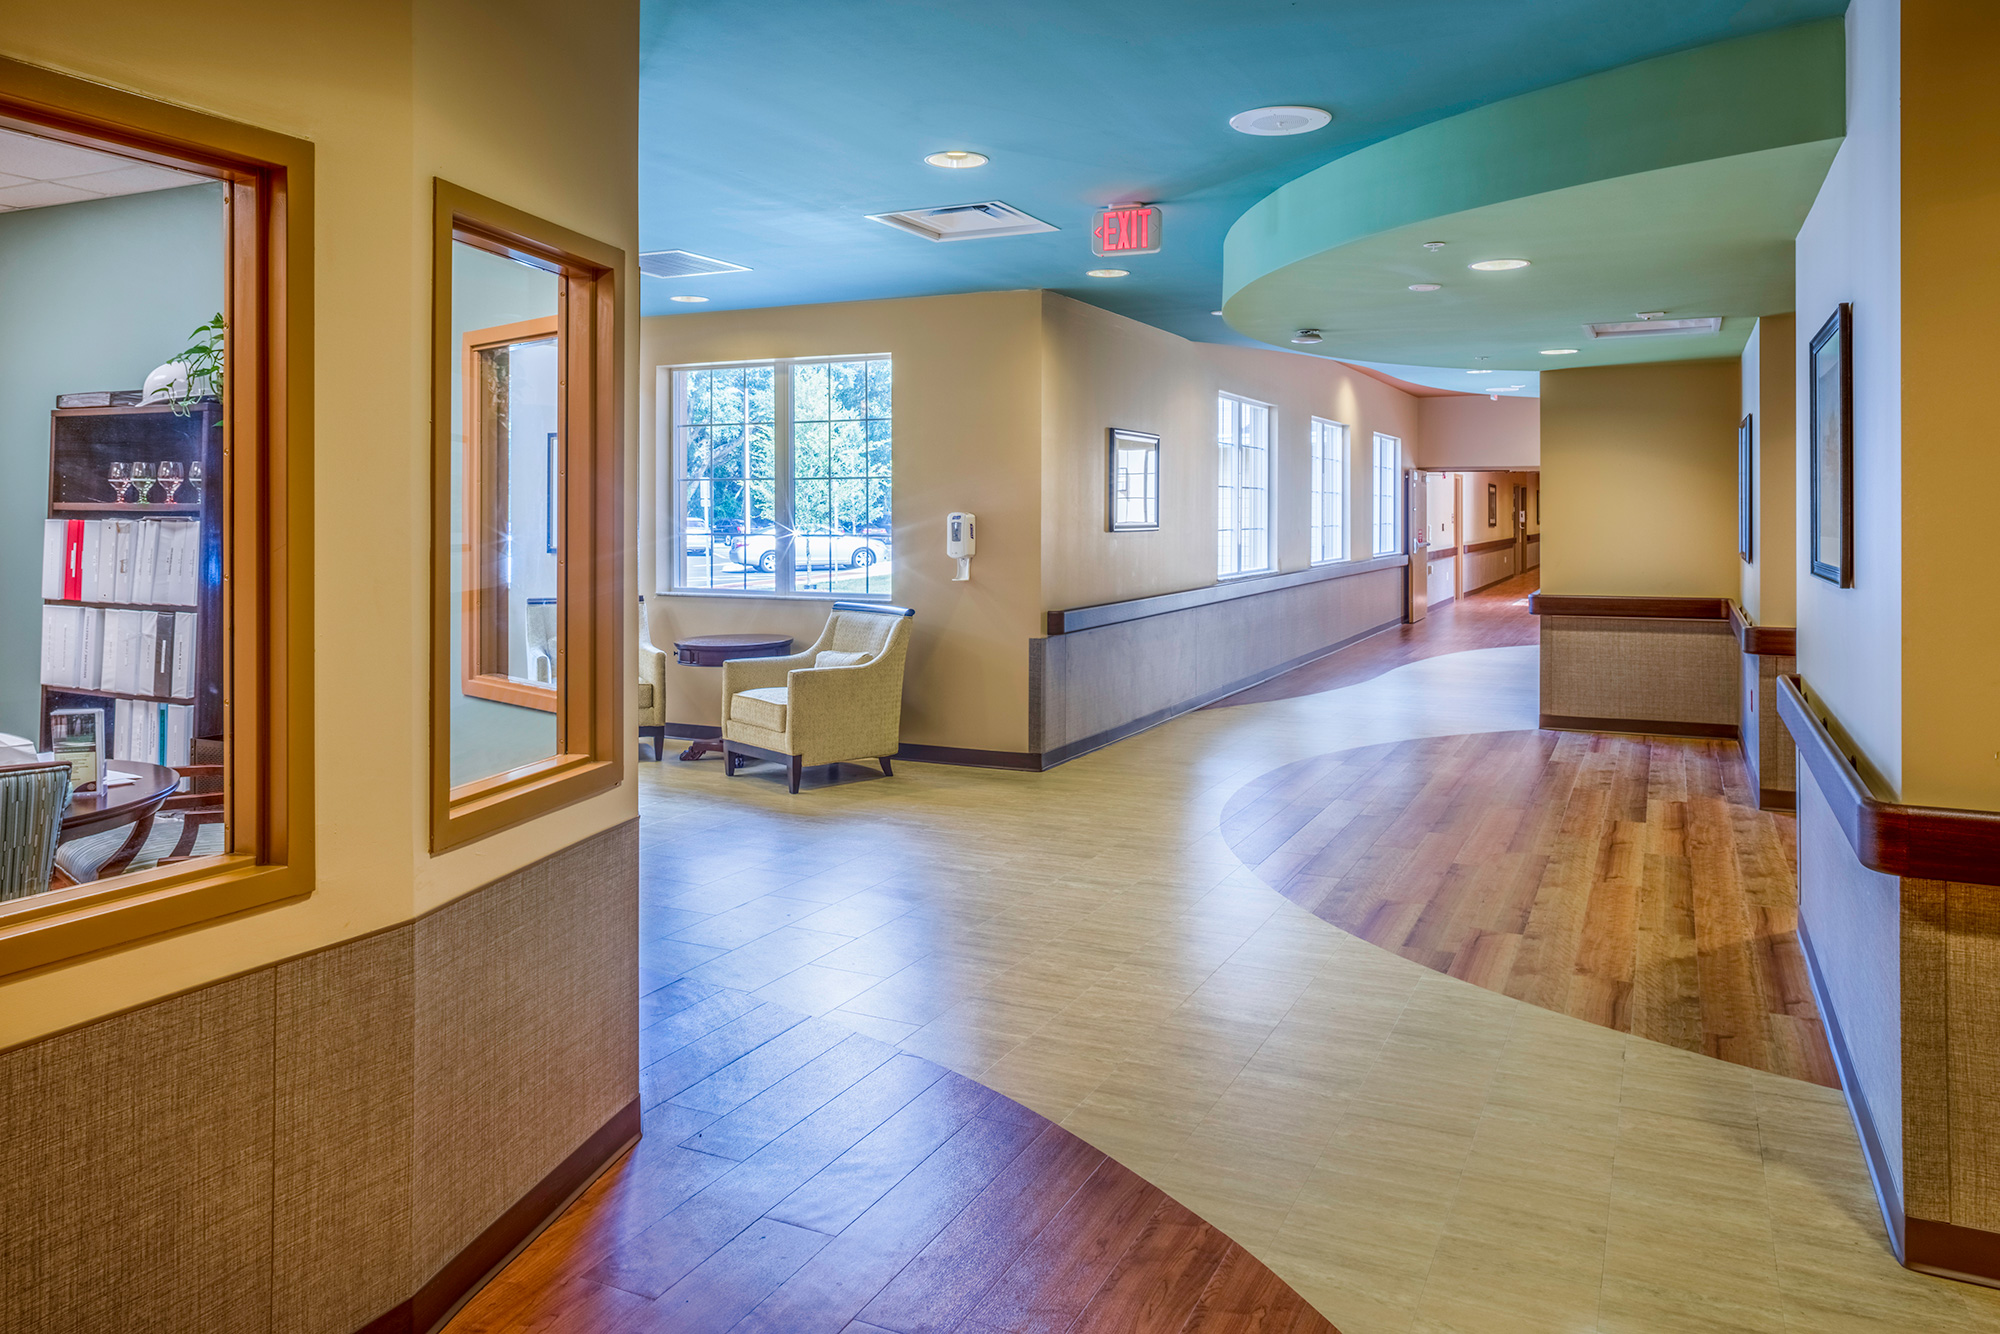 GainesvilleHealthcareCenter7